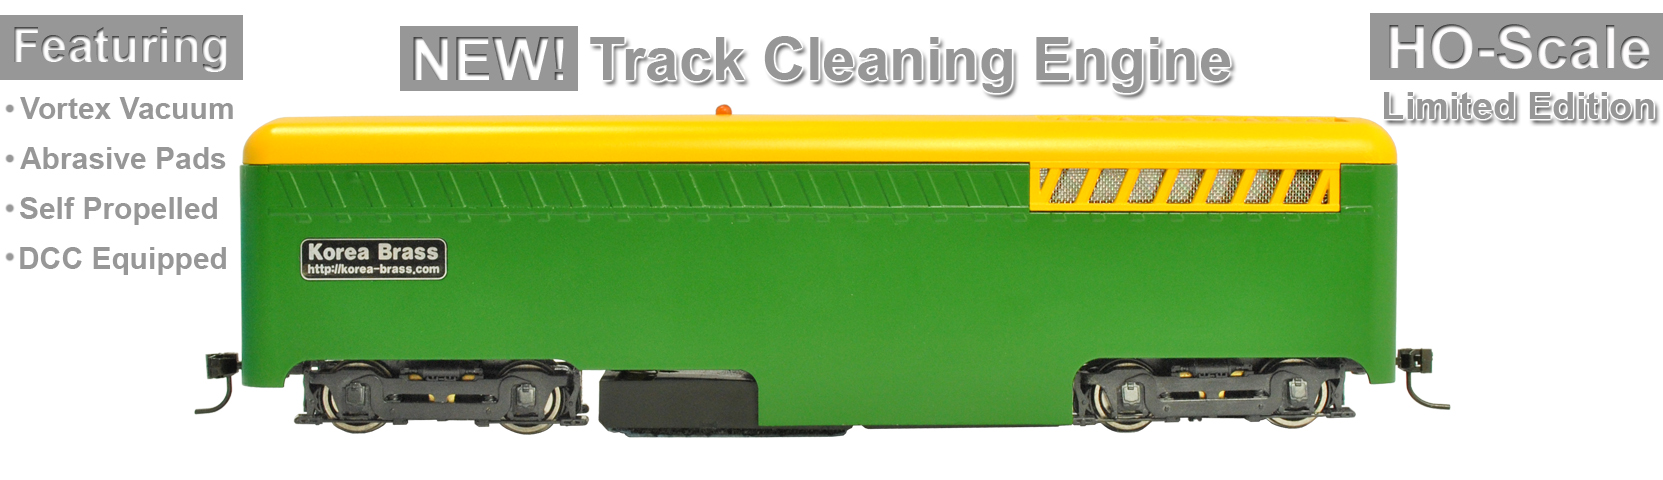 Limited Edition Track Cleaning Engine Now Shipping!